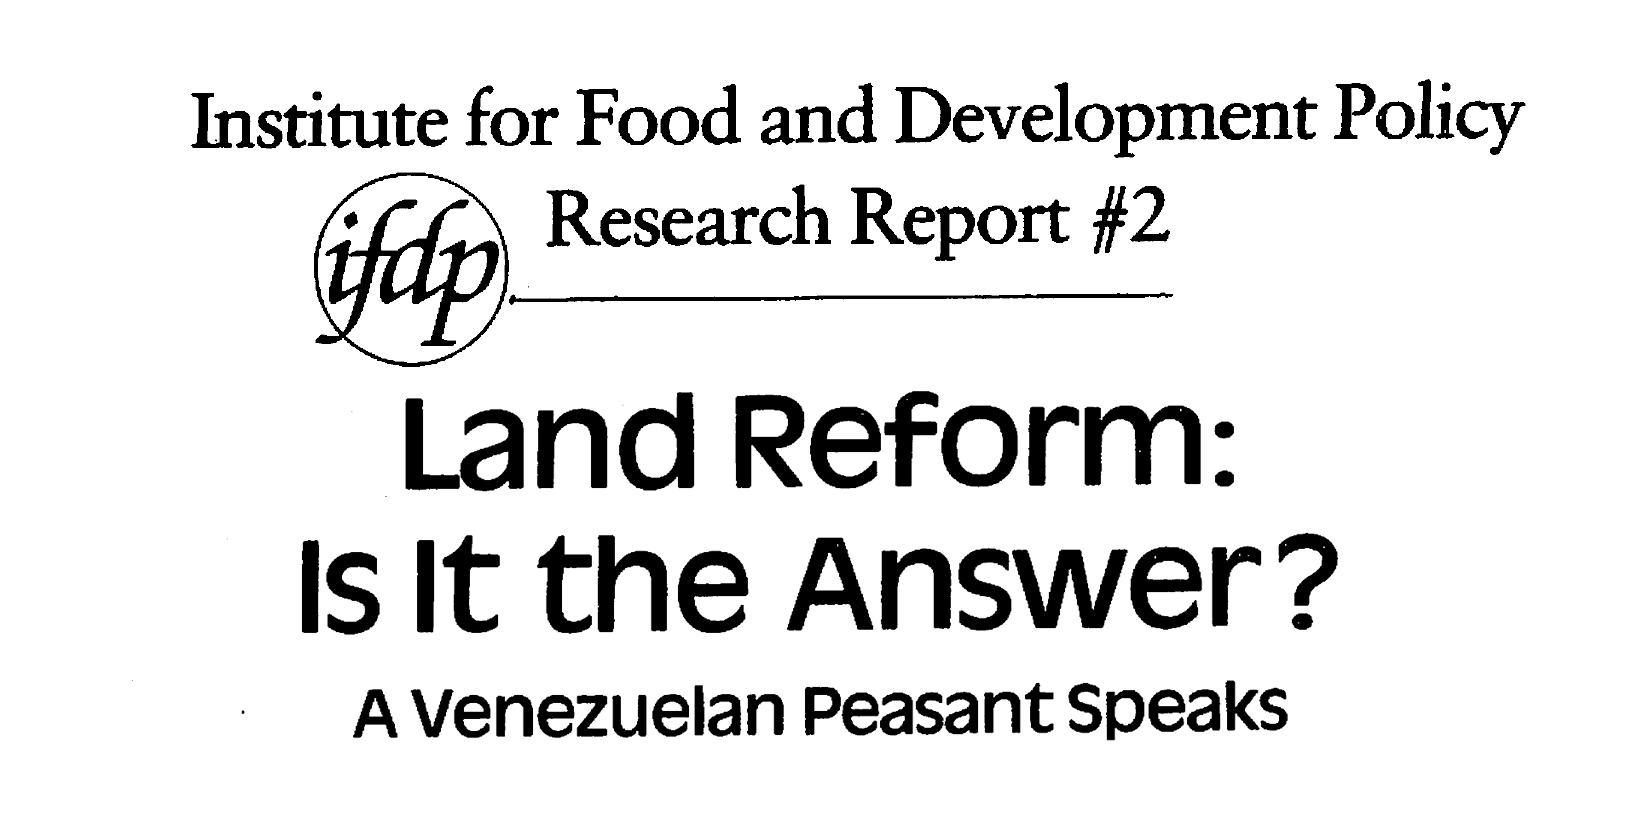 Land Reform: Is it the answer? A Venezuelan peasant speaks